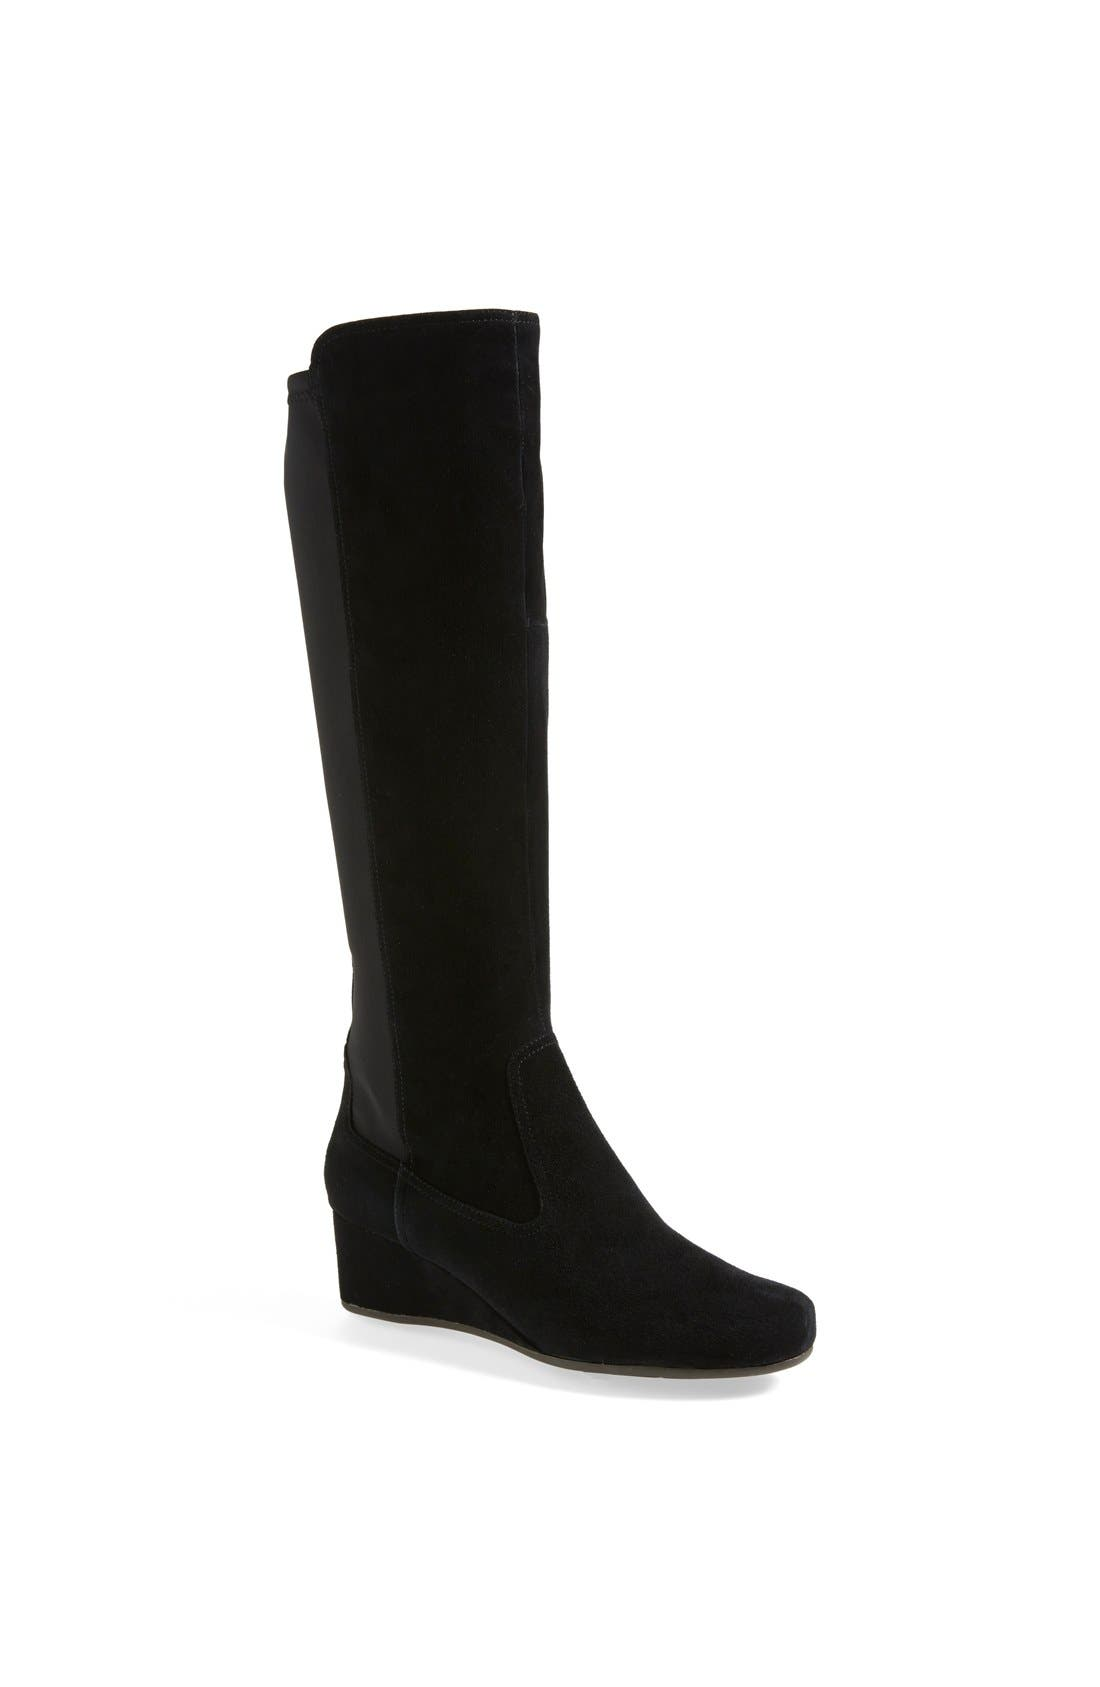 Alternate Image 1 Selected - Rockport 'Total Motion' Knee High Wedge Boot (Women)